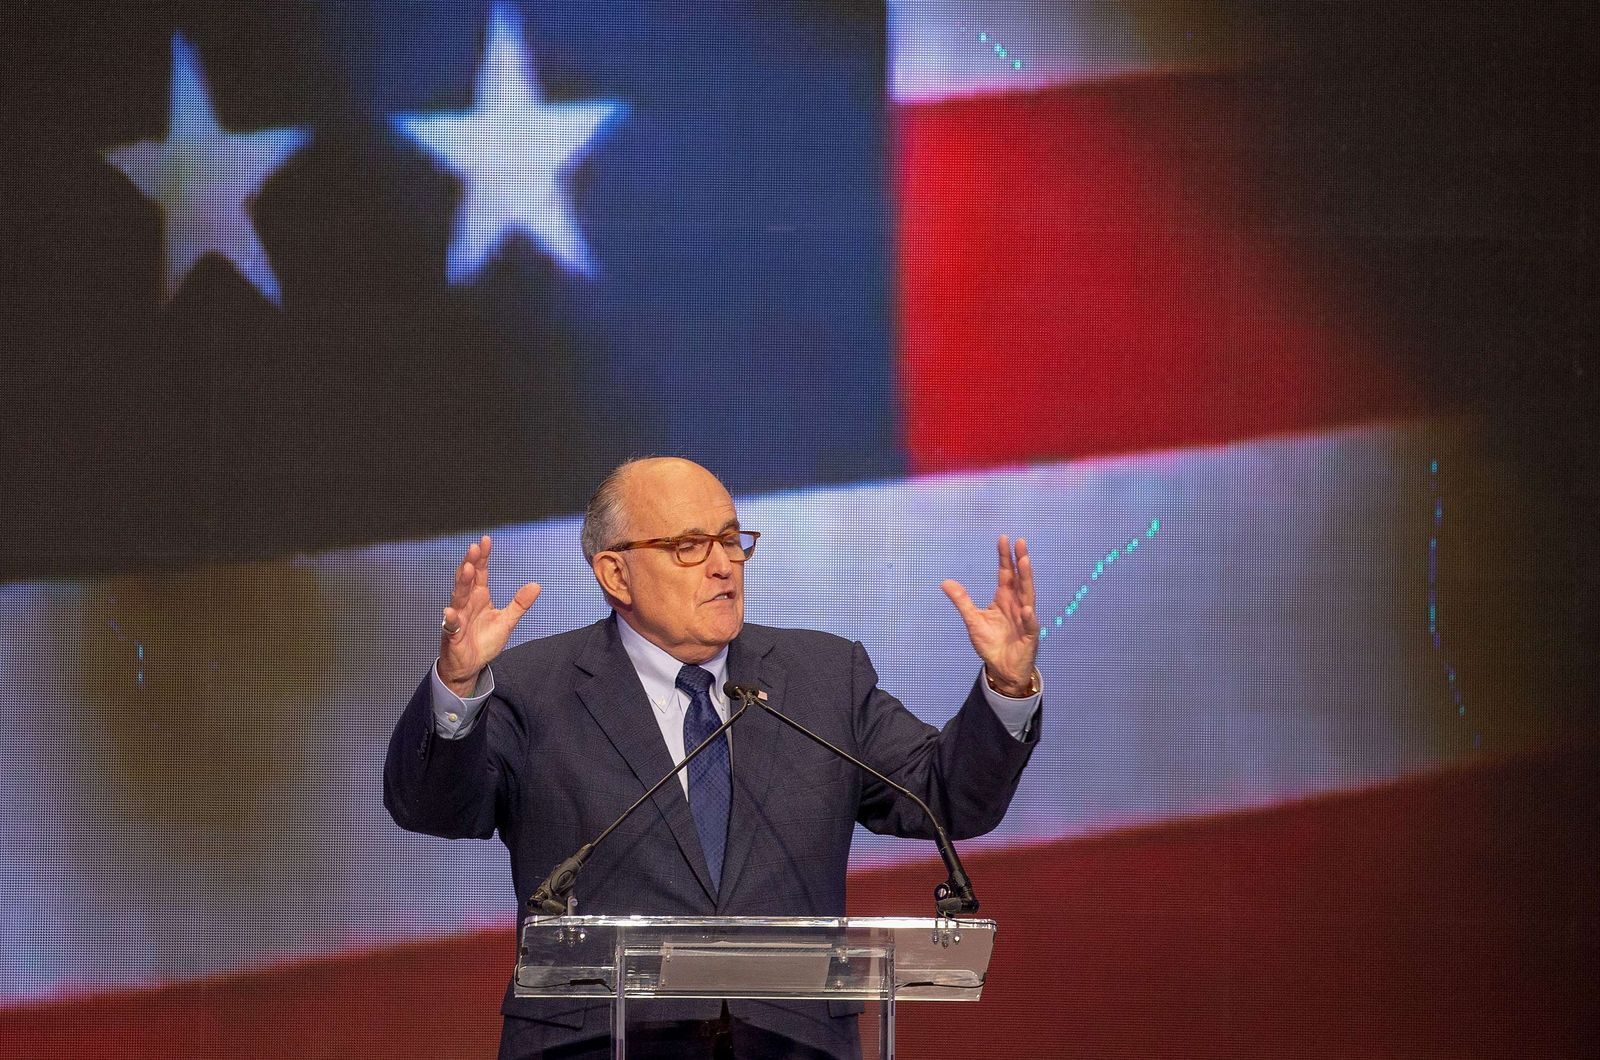 US-PRESIDENT-TRUMPS-NEWLY-APPOINTED-LAWYER-RUDY-GIULIANI-SPEAKS